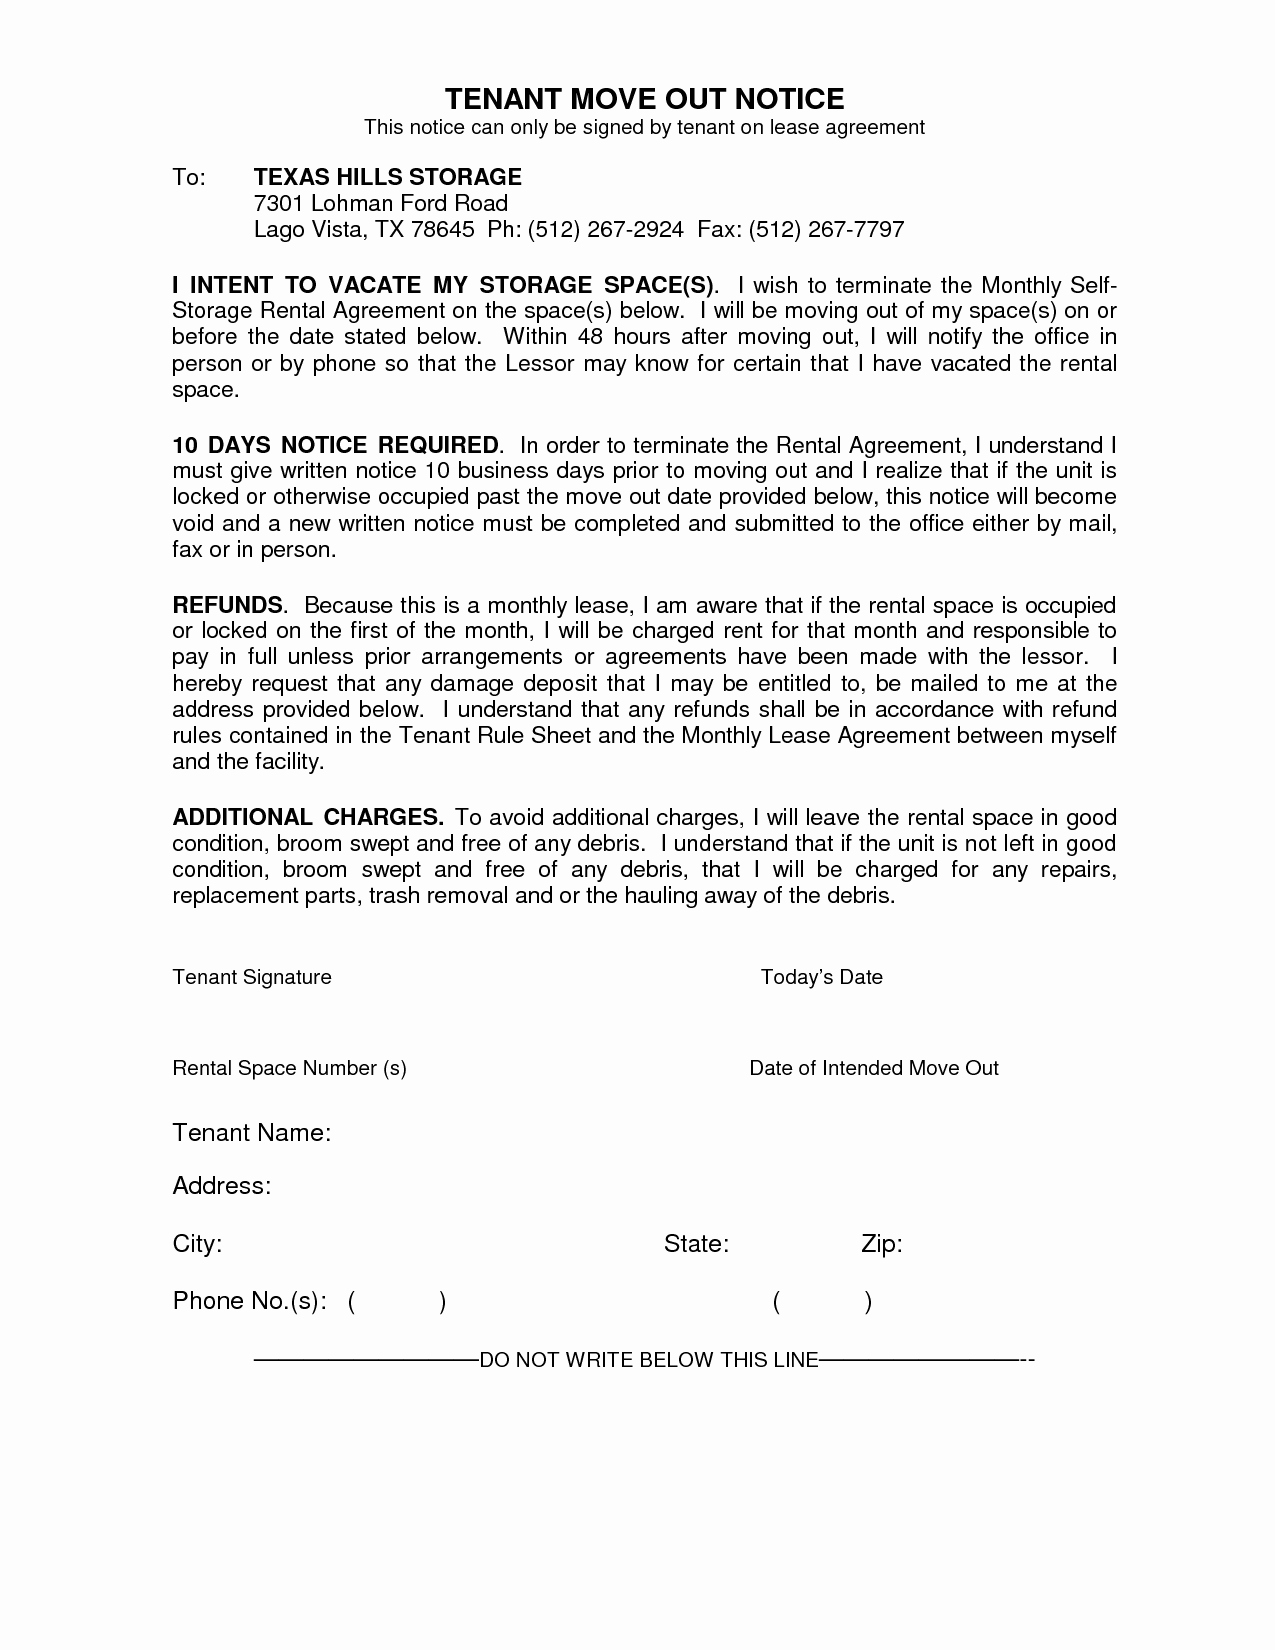 Letters Of Moving Out Notice Lovely Best S Of Move Out Notice to Tenant Template 30 Day